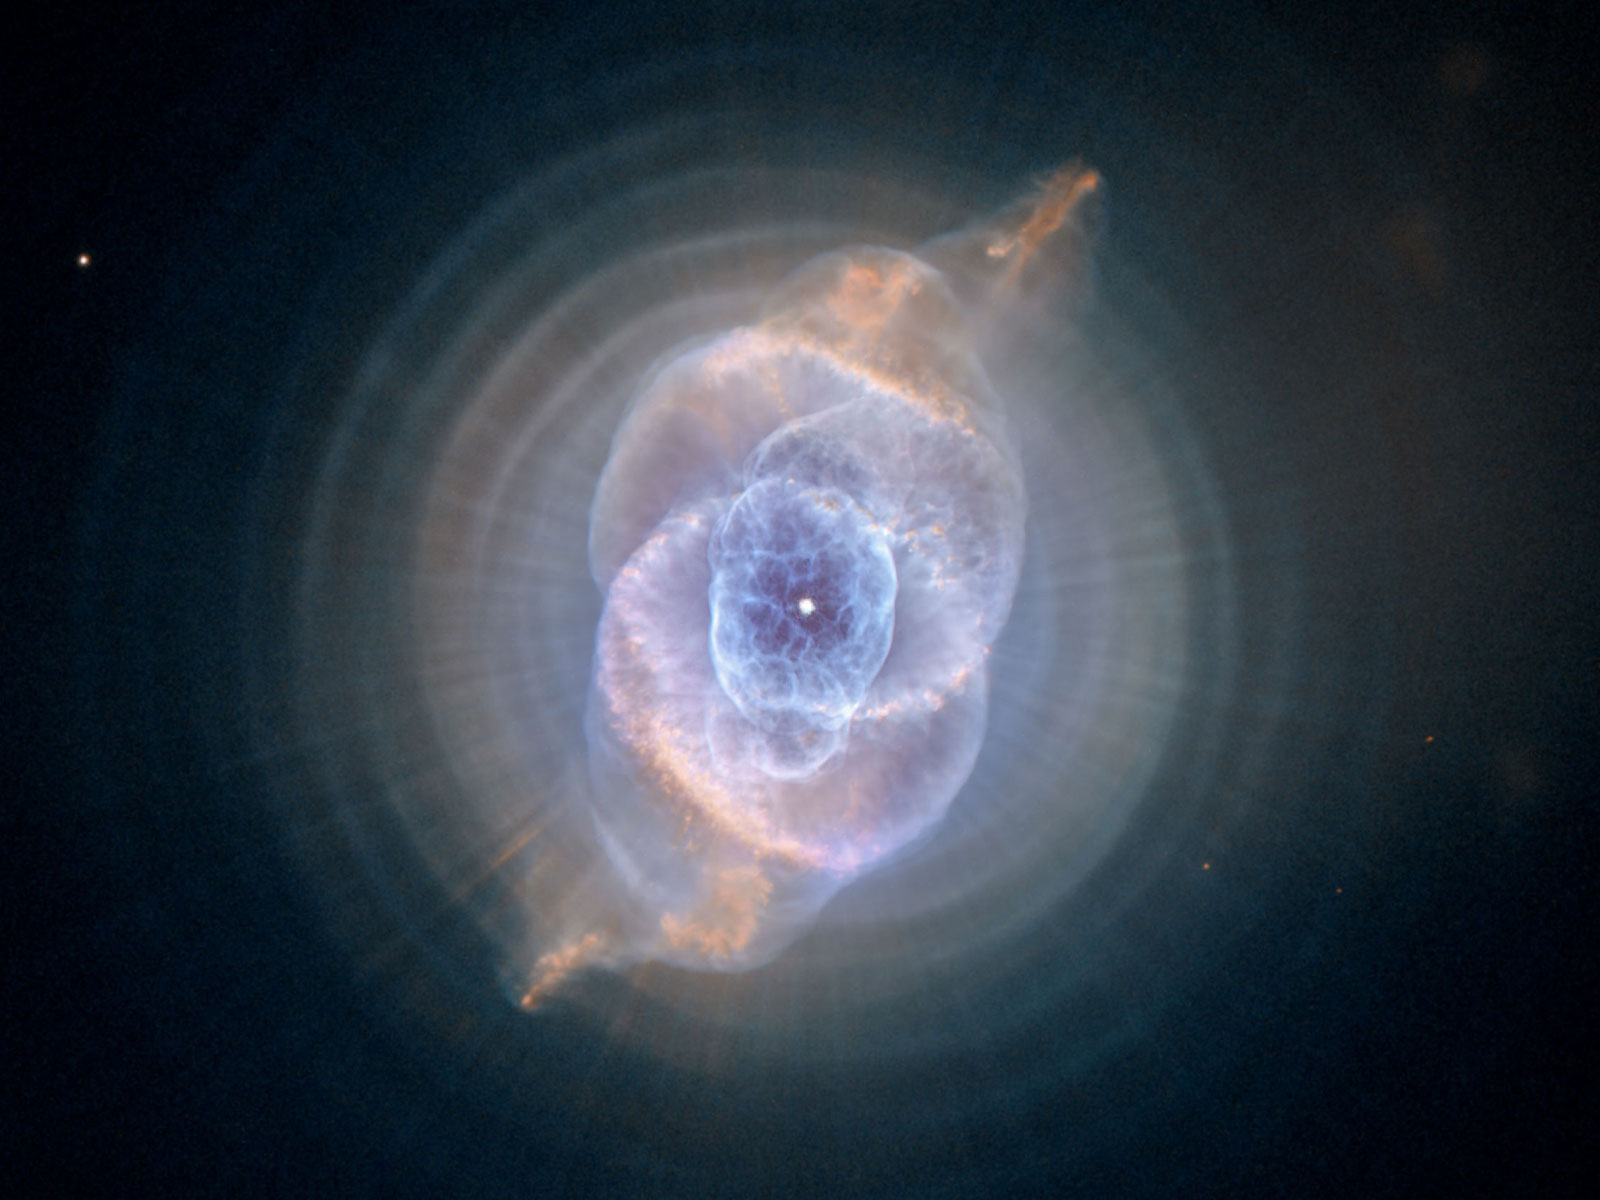 cat's eye nebula - wallpaper hd | earth blog